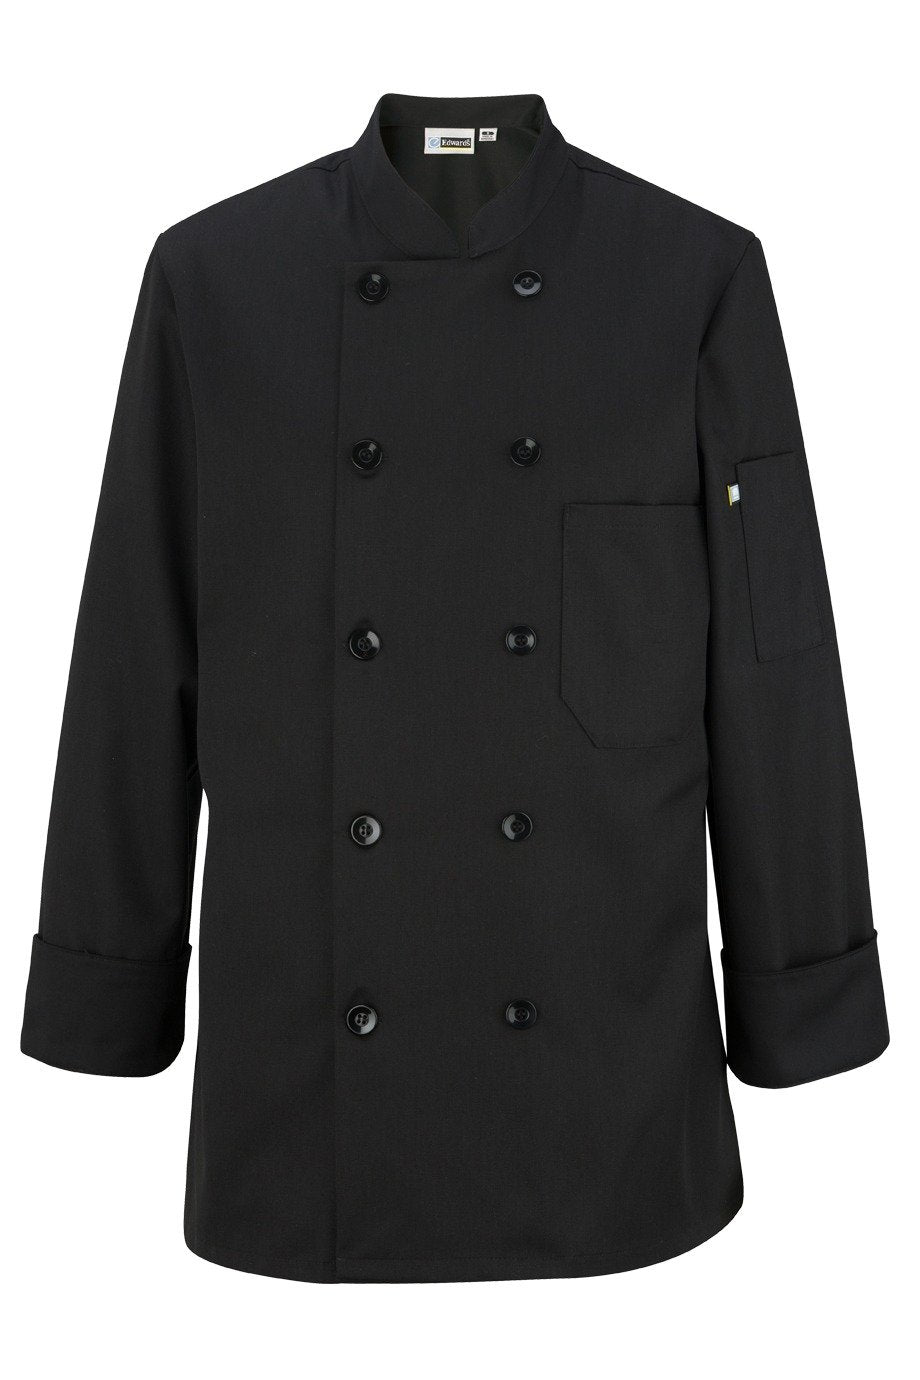 edwards-garment-chef-coats-and-server-jackets